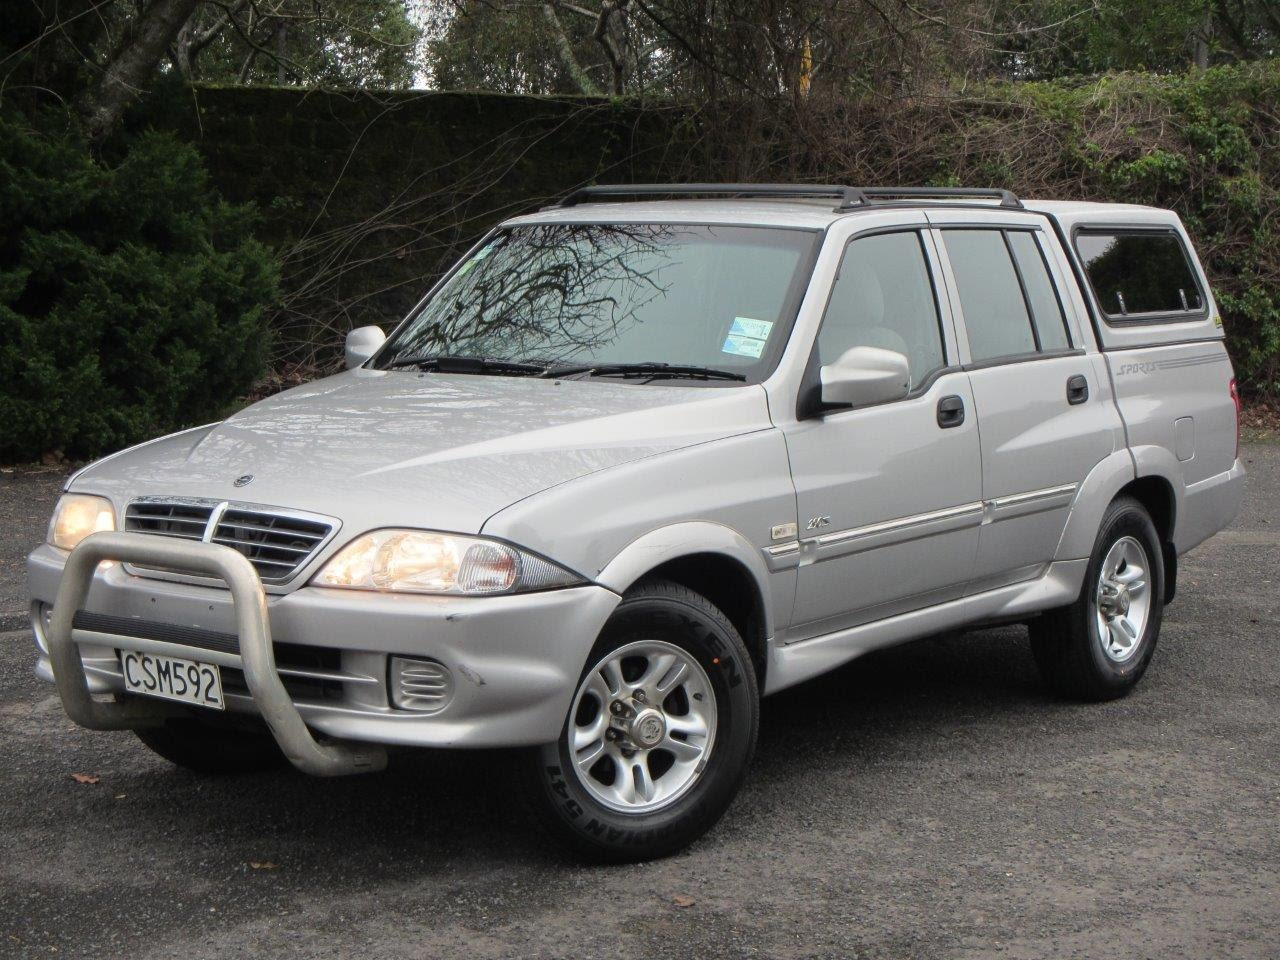 2005 Ssangyong Musso #9